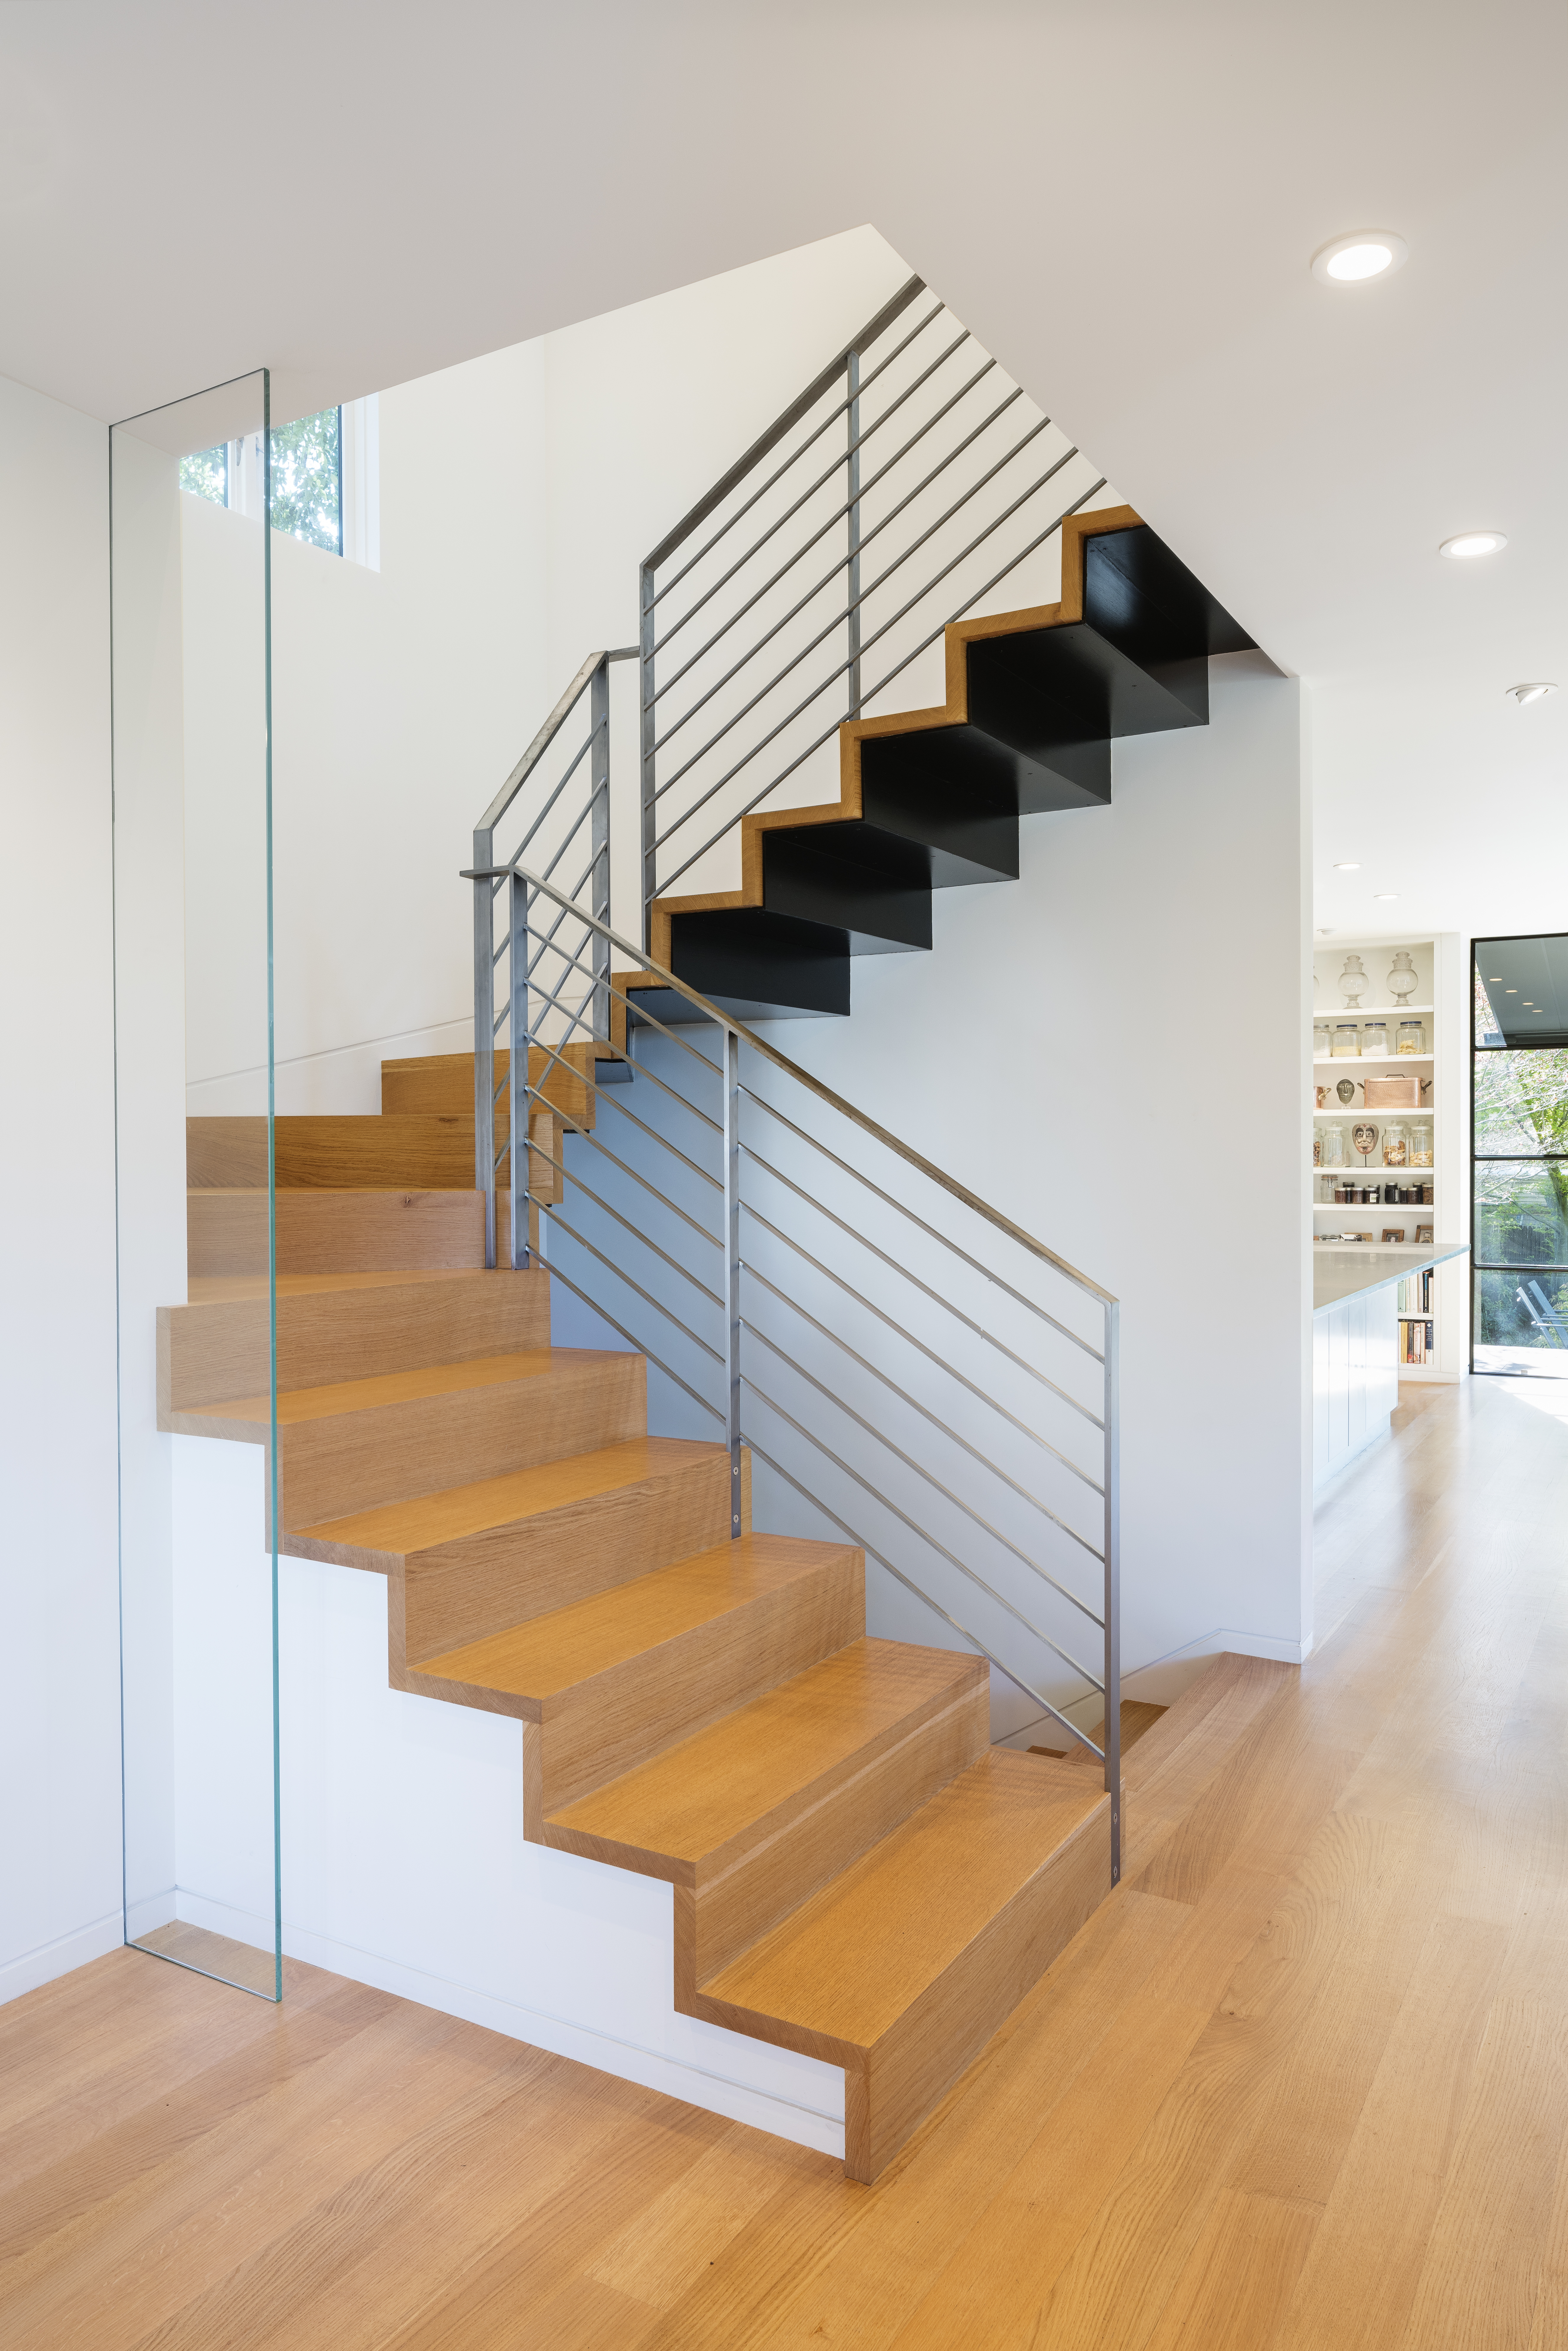 Cantilever stairway.